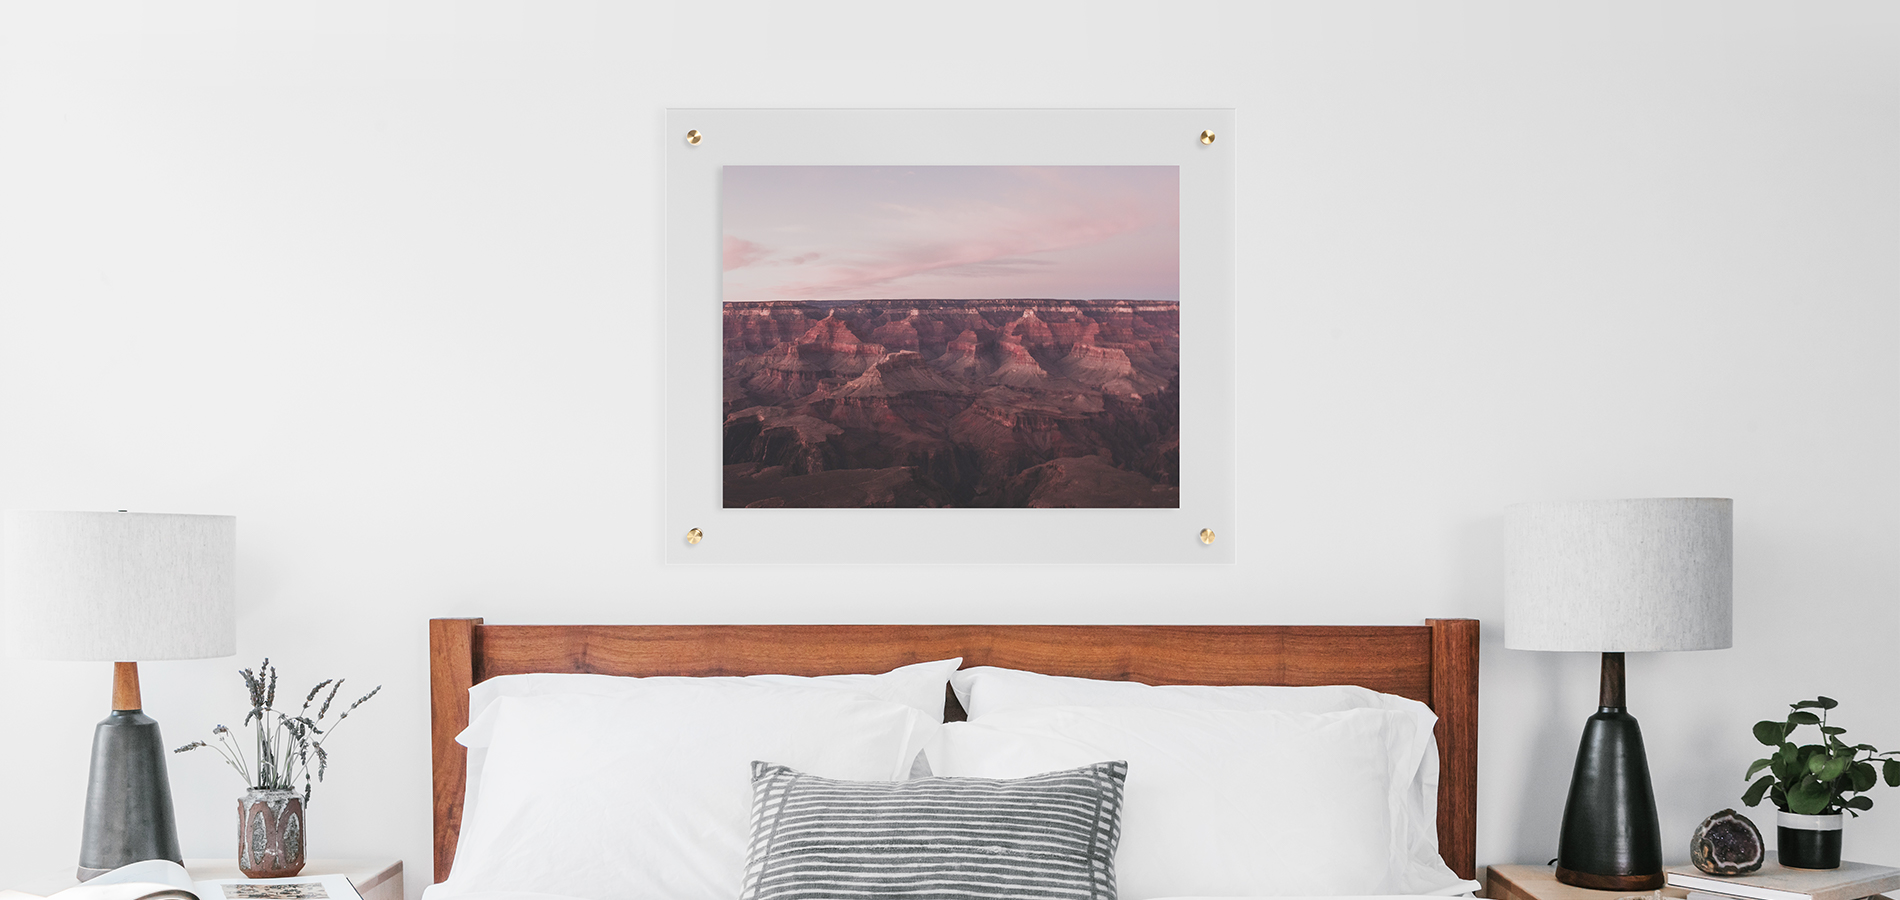 Floating frame hung above bed with white linens in minimalist bedroom